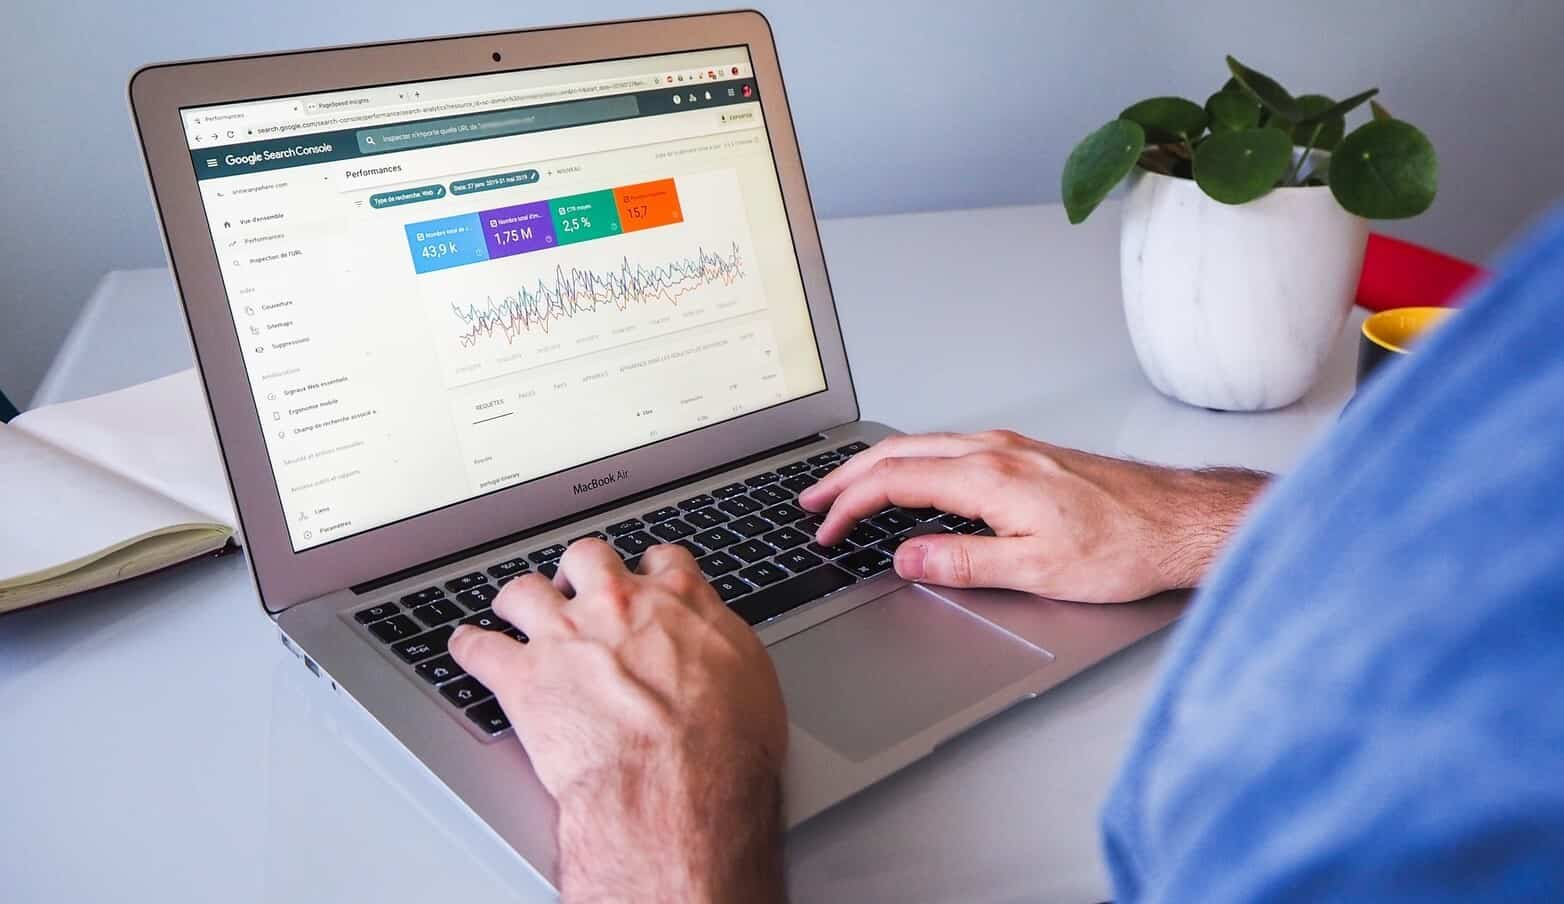 SEO planning with Google search console